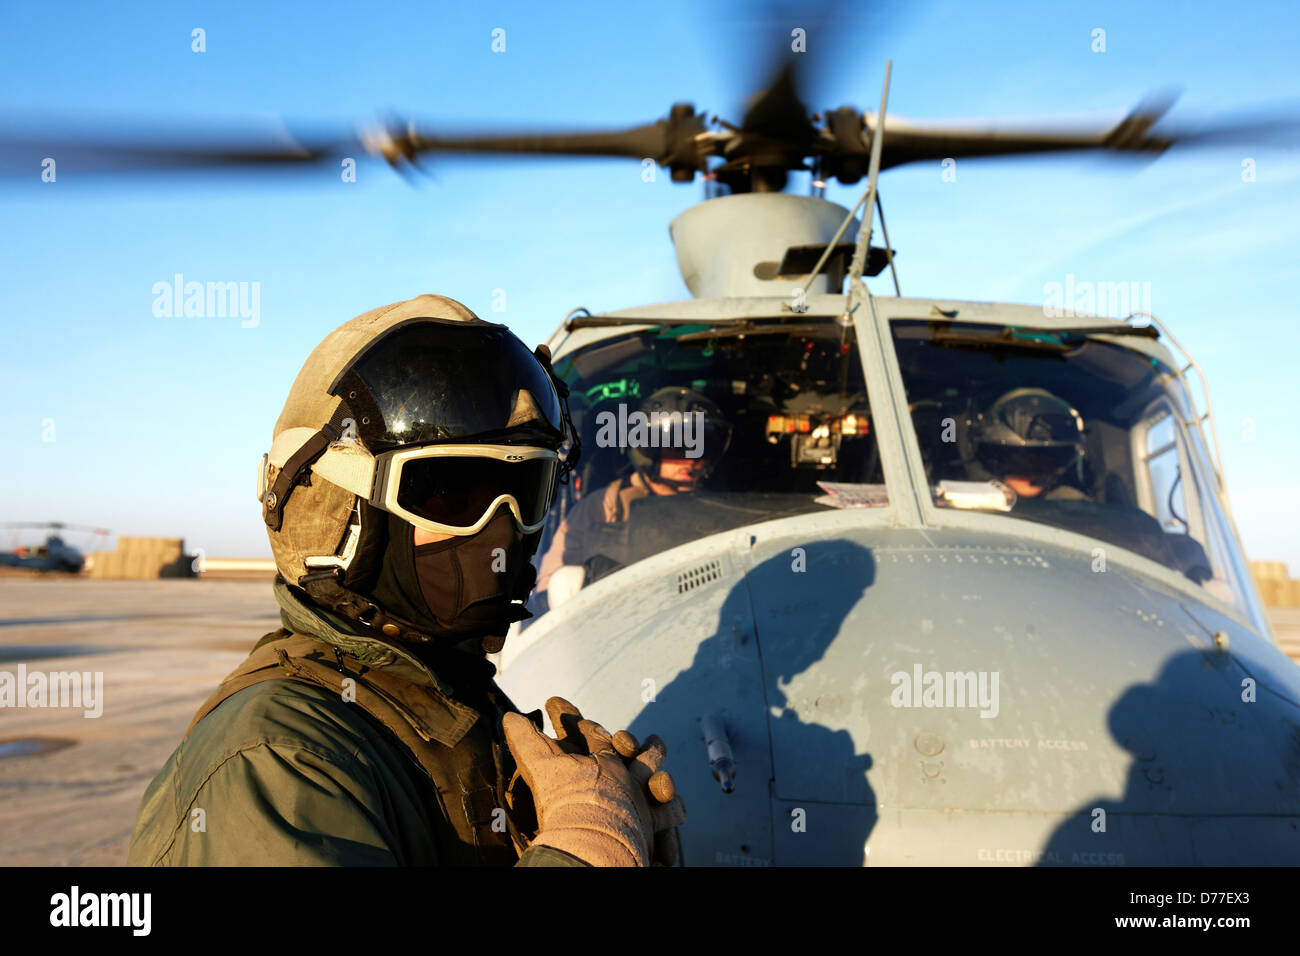 United States Marine Corps aviators ground crew prepare to launch UH-1Y Venom helicopter on combat operation in - Stock Image